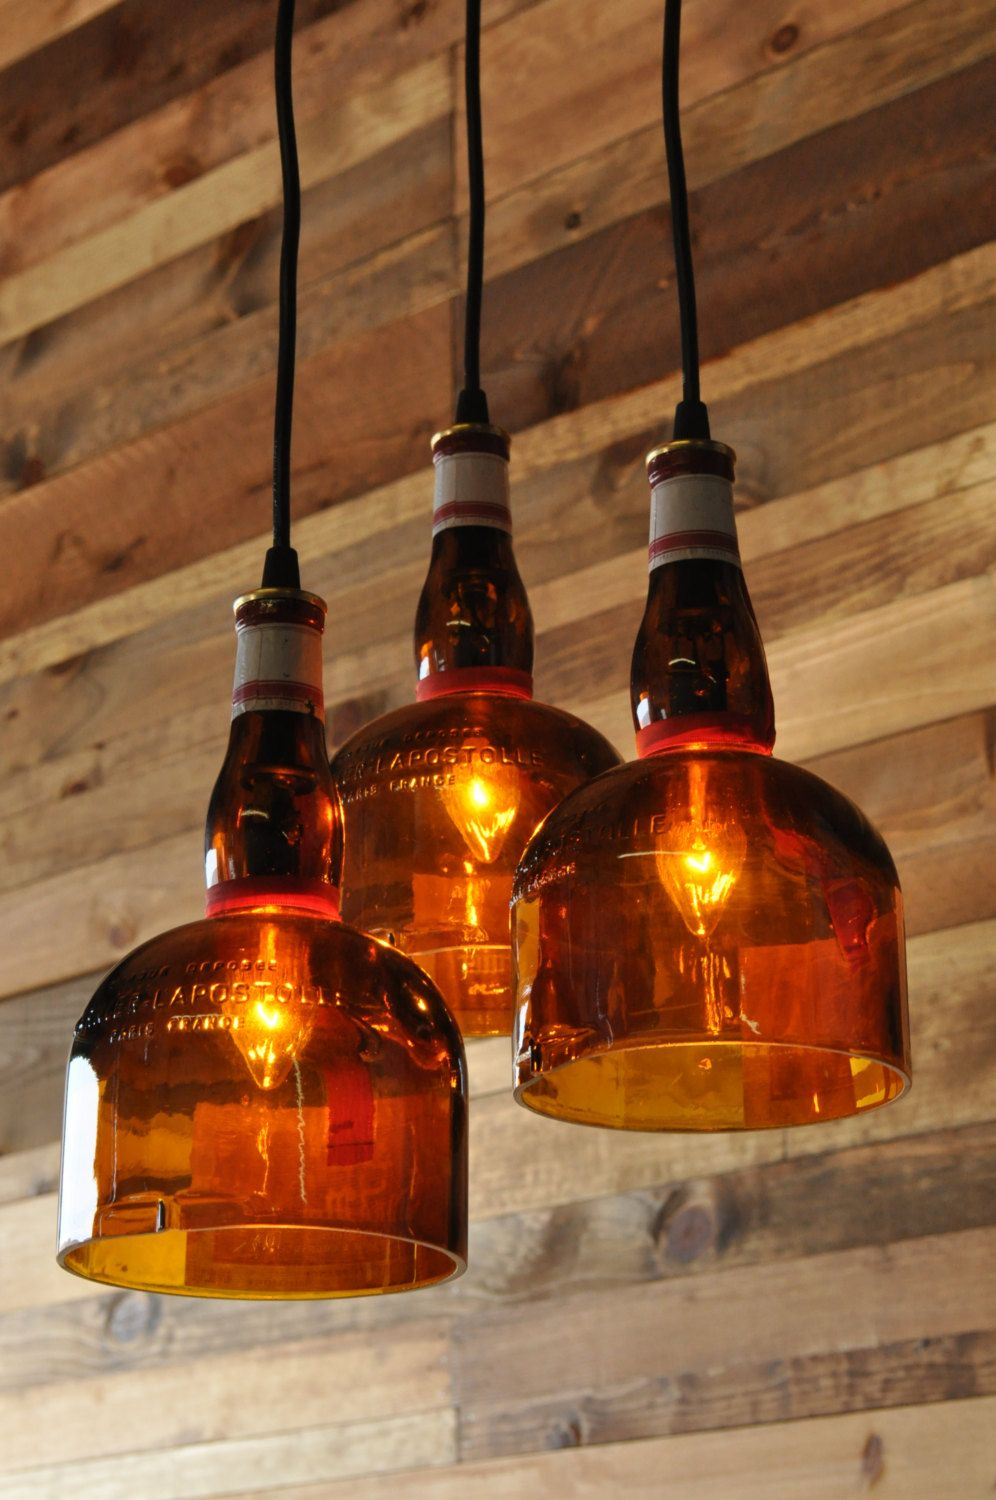 Recycled bottle gran marnier chandelier decoraciones para casa recycled bottle gran marnier chandelier by moonshinelamp on etsy 38500 aloadofball Gallery